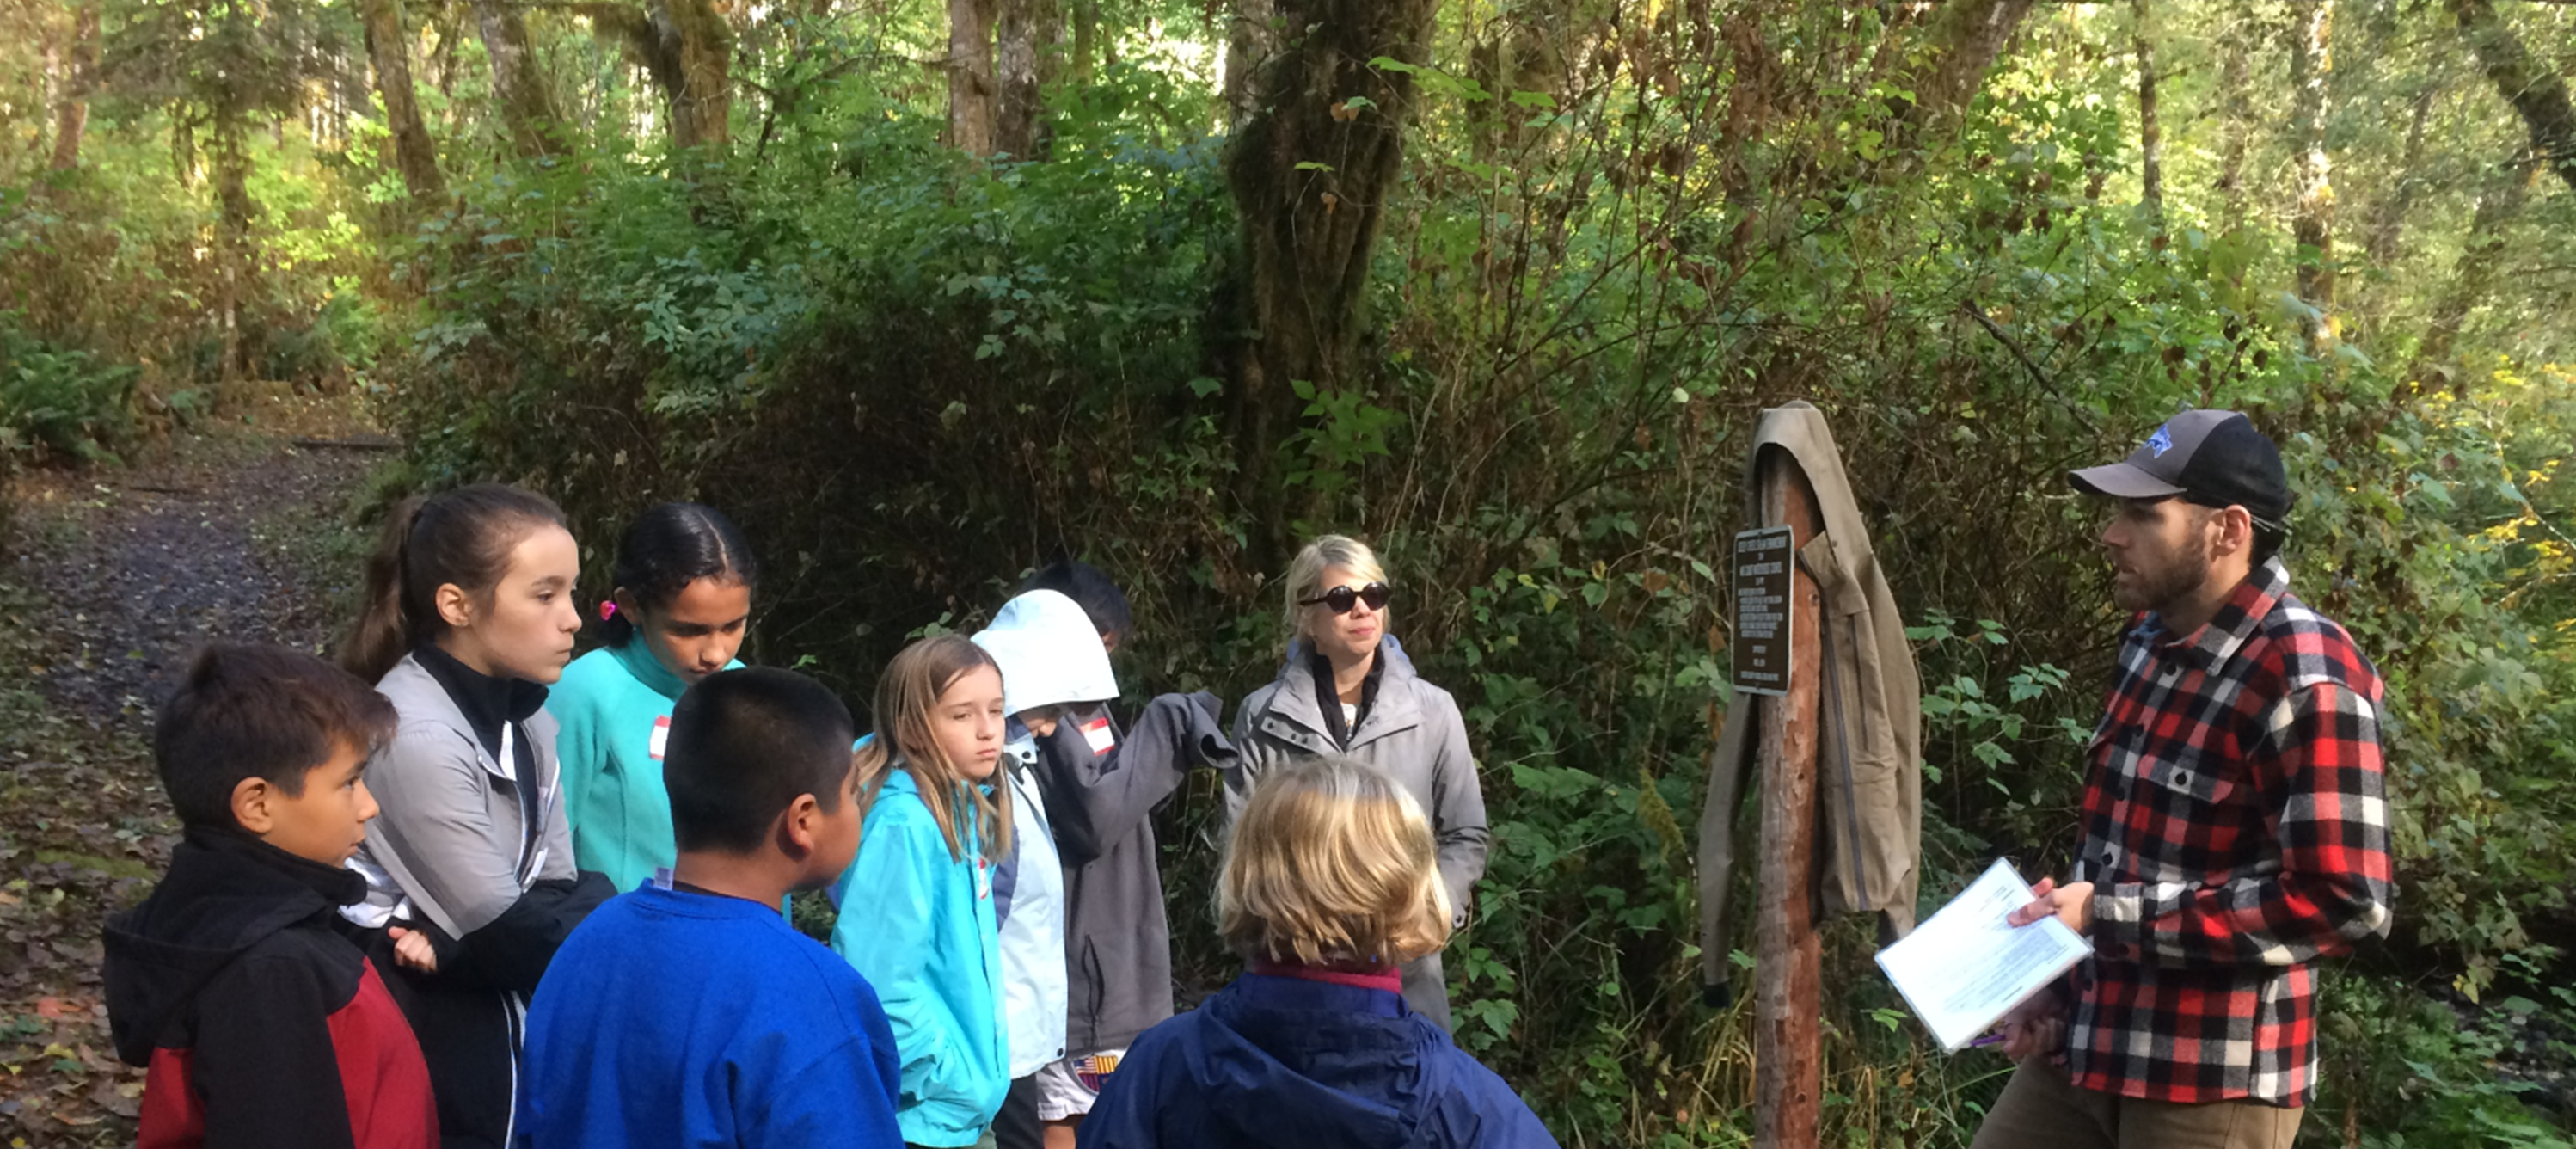 Karrie, at center with sunglasses, models active listening for her students on a Salmon Watch field trip.